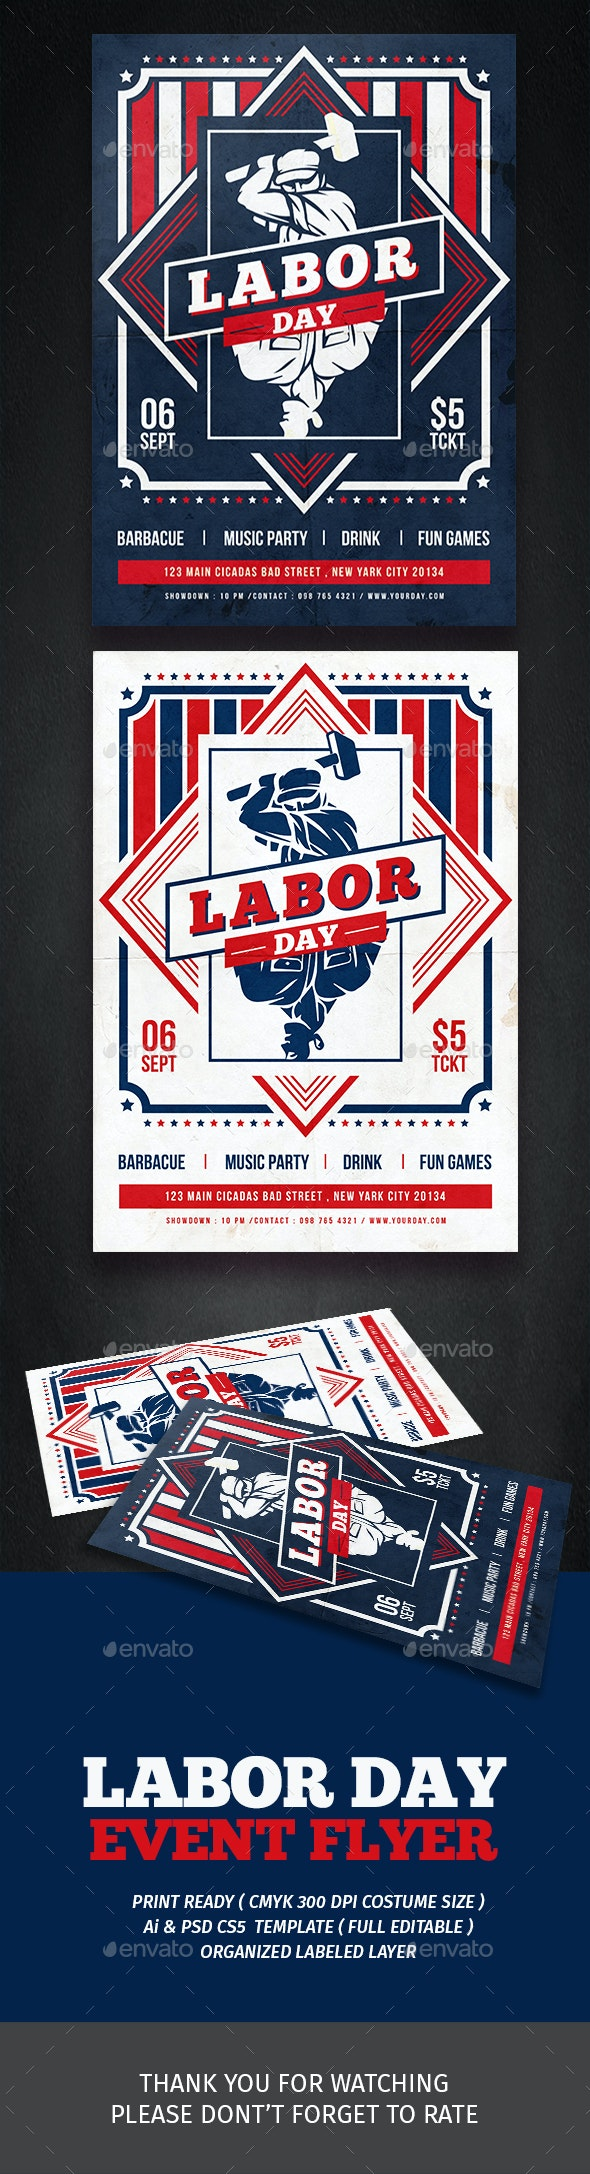 Labor Day Festival Flyer - Events Flyers